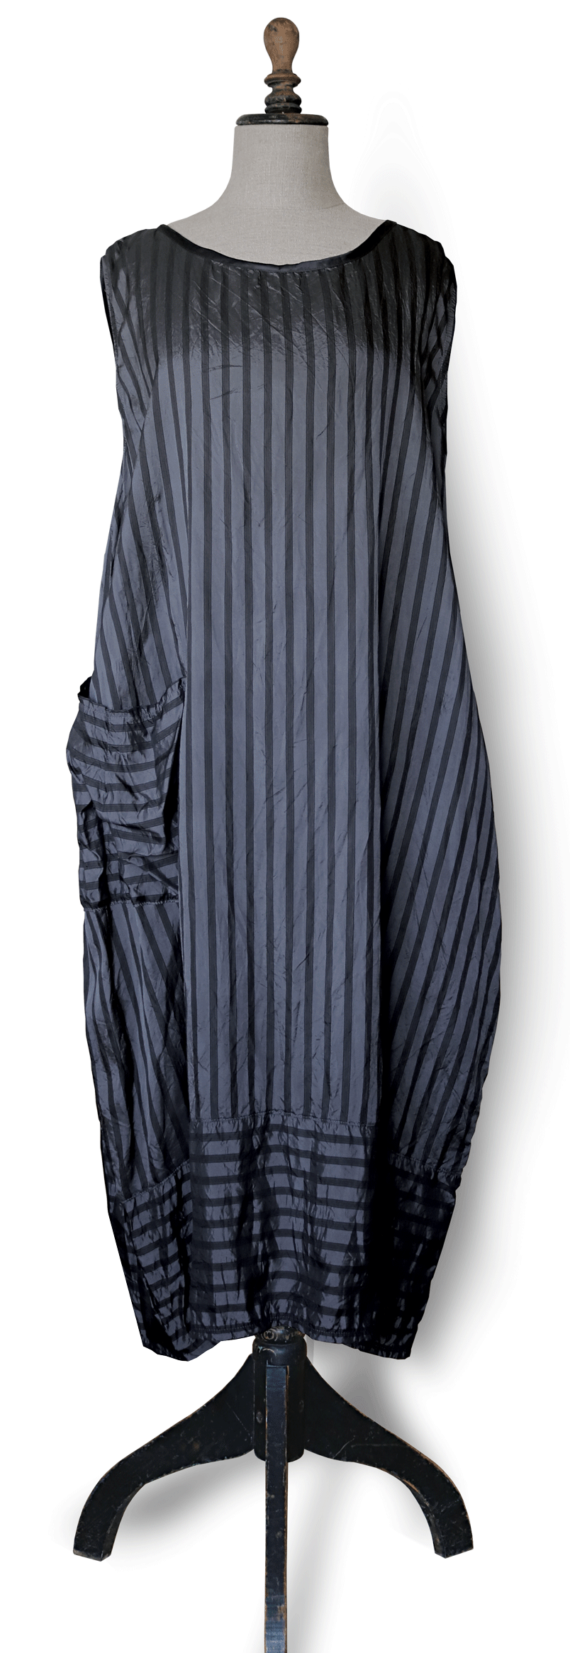 Maxi dress grey black striped front – julie london